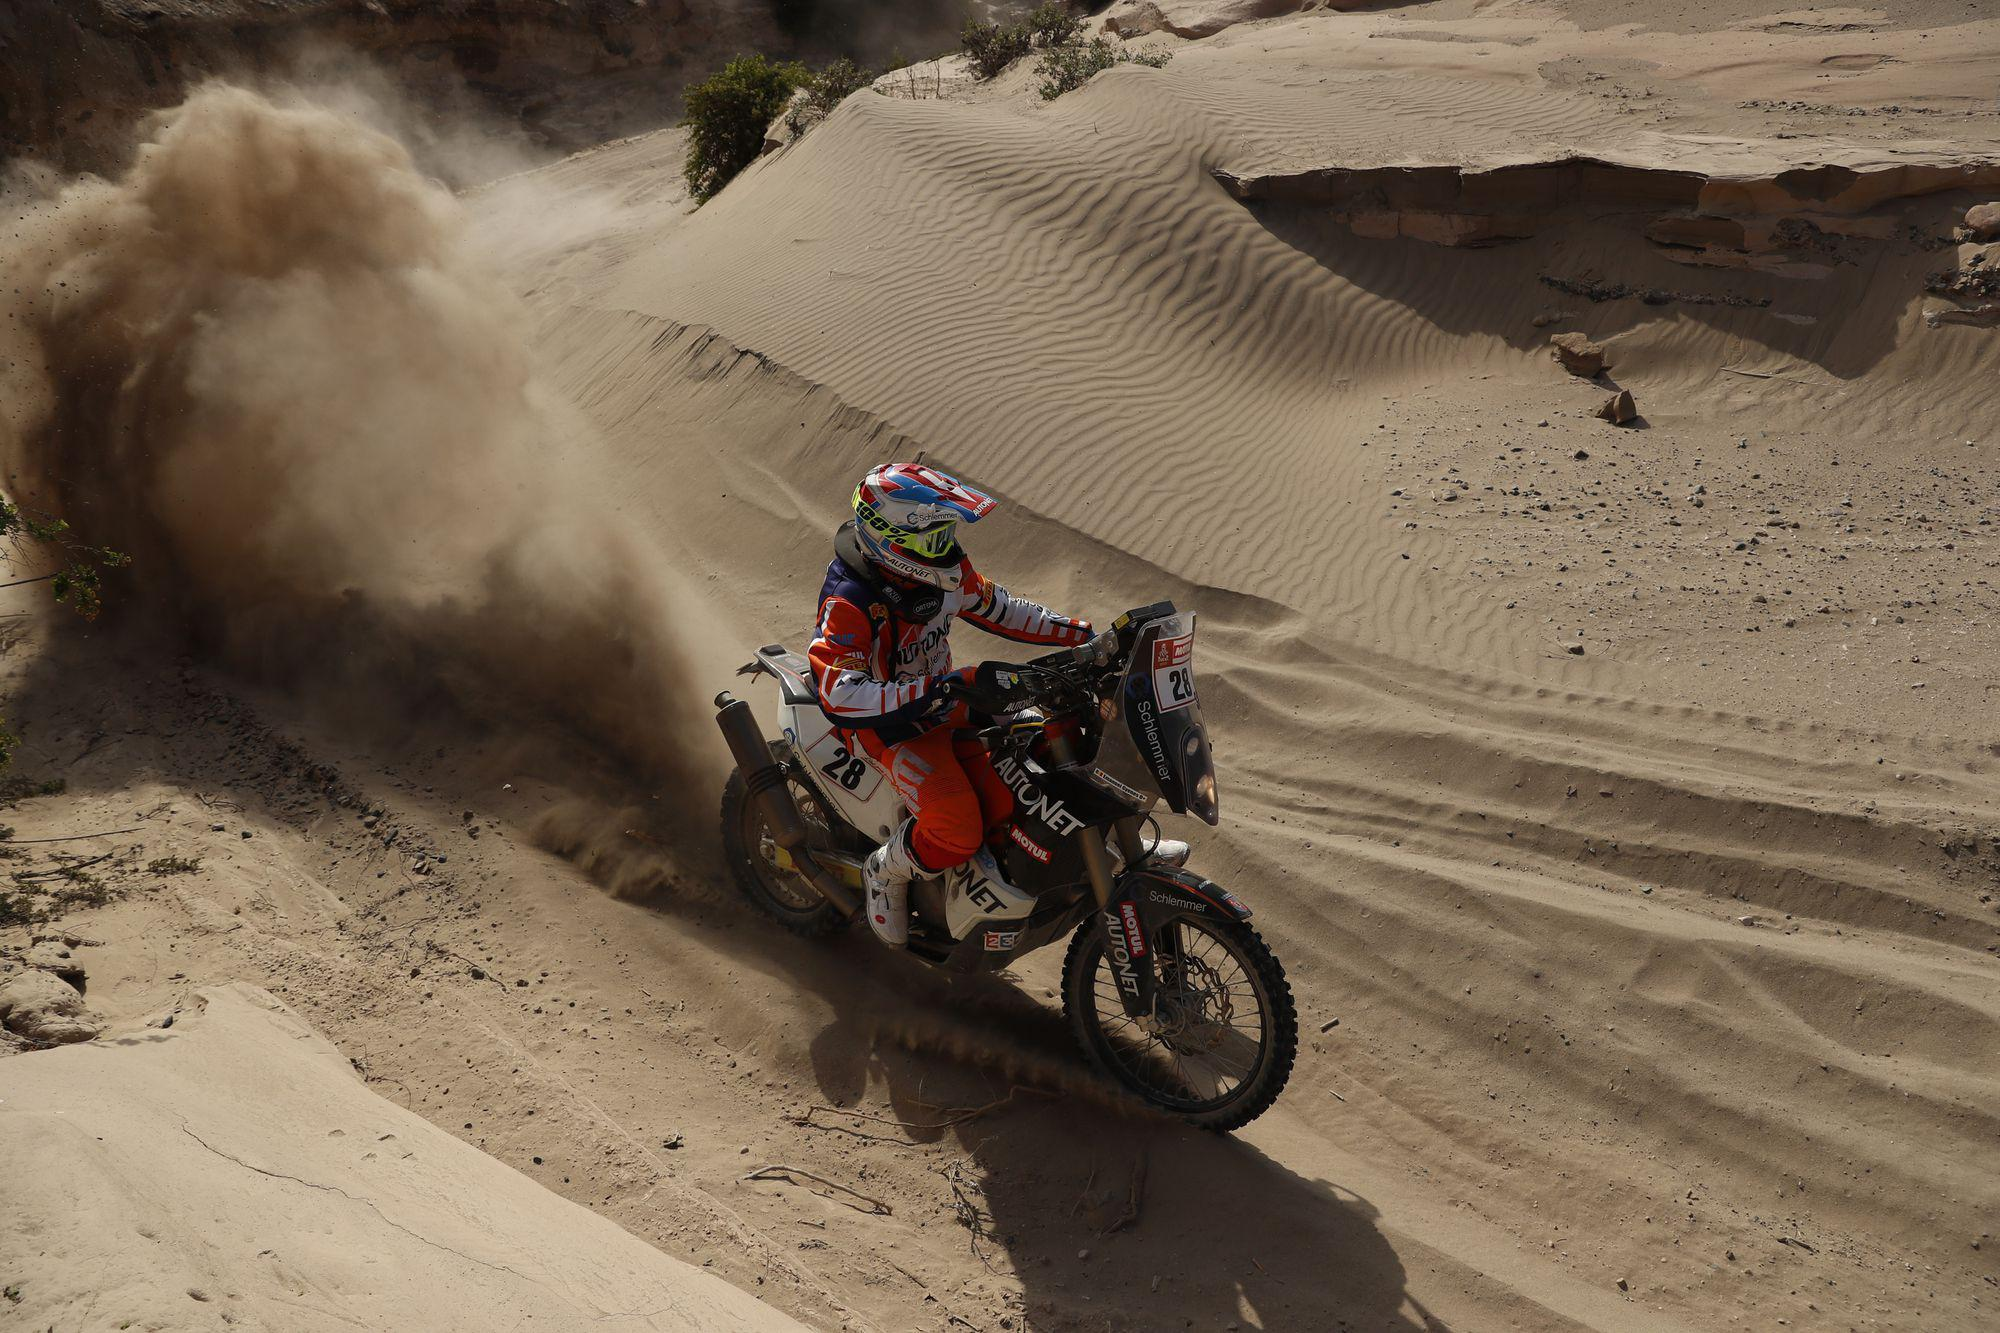 Fourth stage of the 2018 Dakar rally